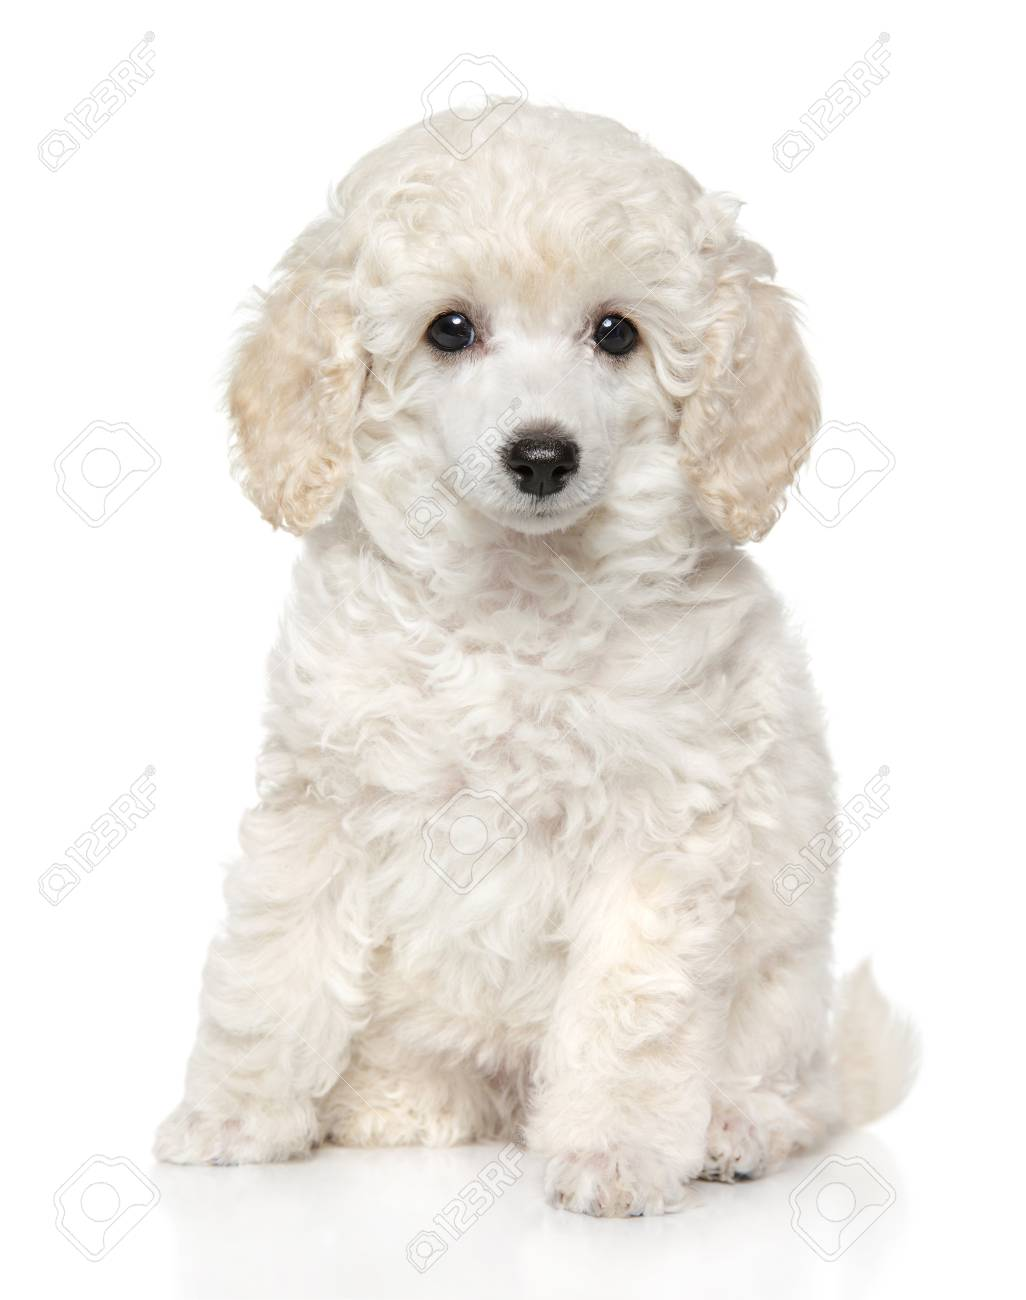 Cute Toy Poodle Puppy Sits In Front Of White Background Baby Stock Photo Picture And Royalty Free Image Image 103958026